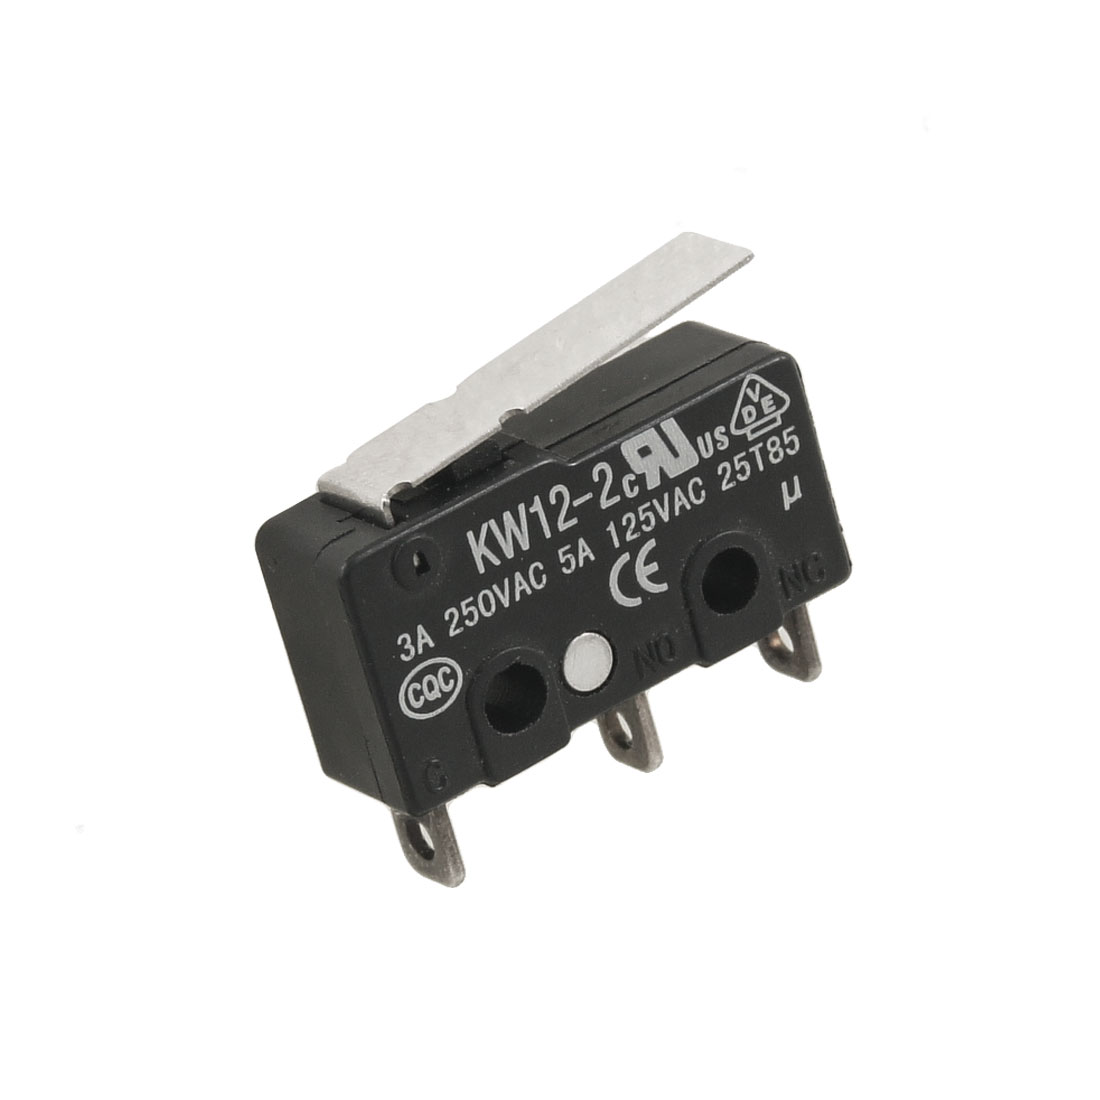 Short Hinge Lever SPDT Momentary Micro Limit Switch 3A/250V 5A/125V AC